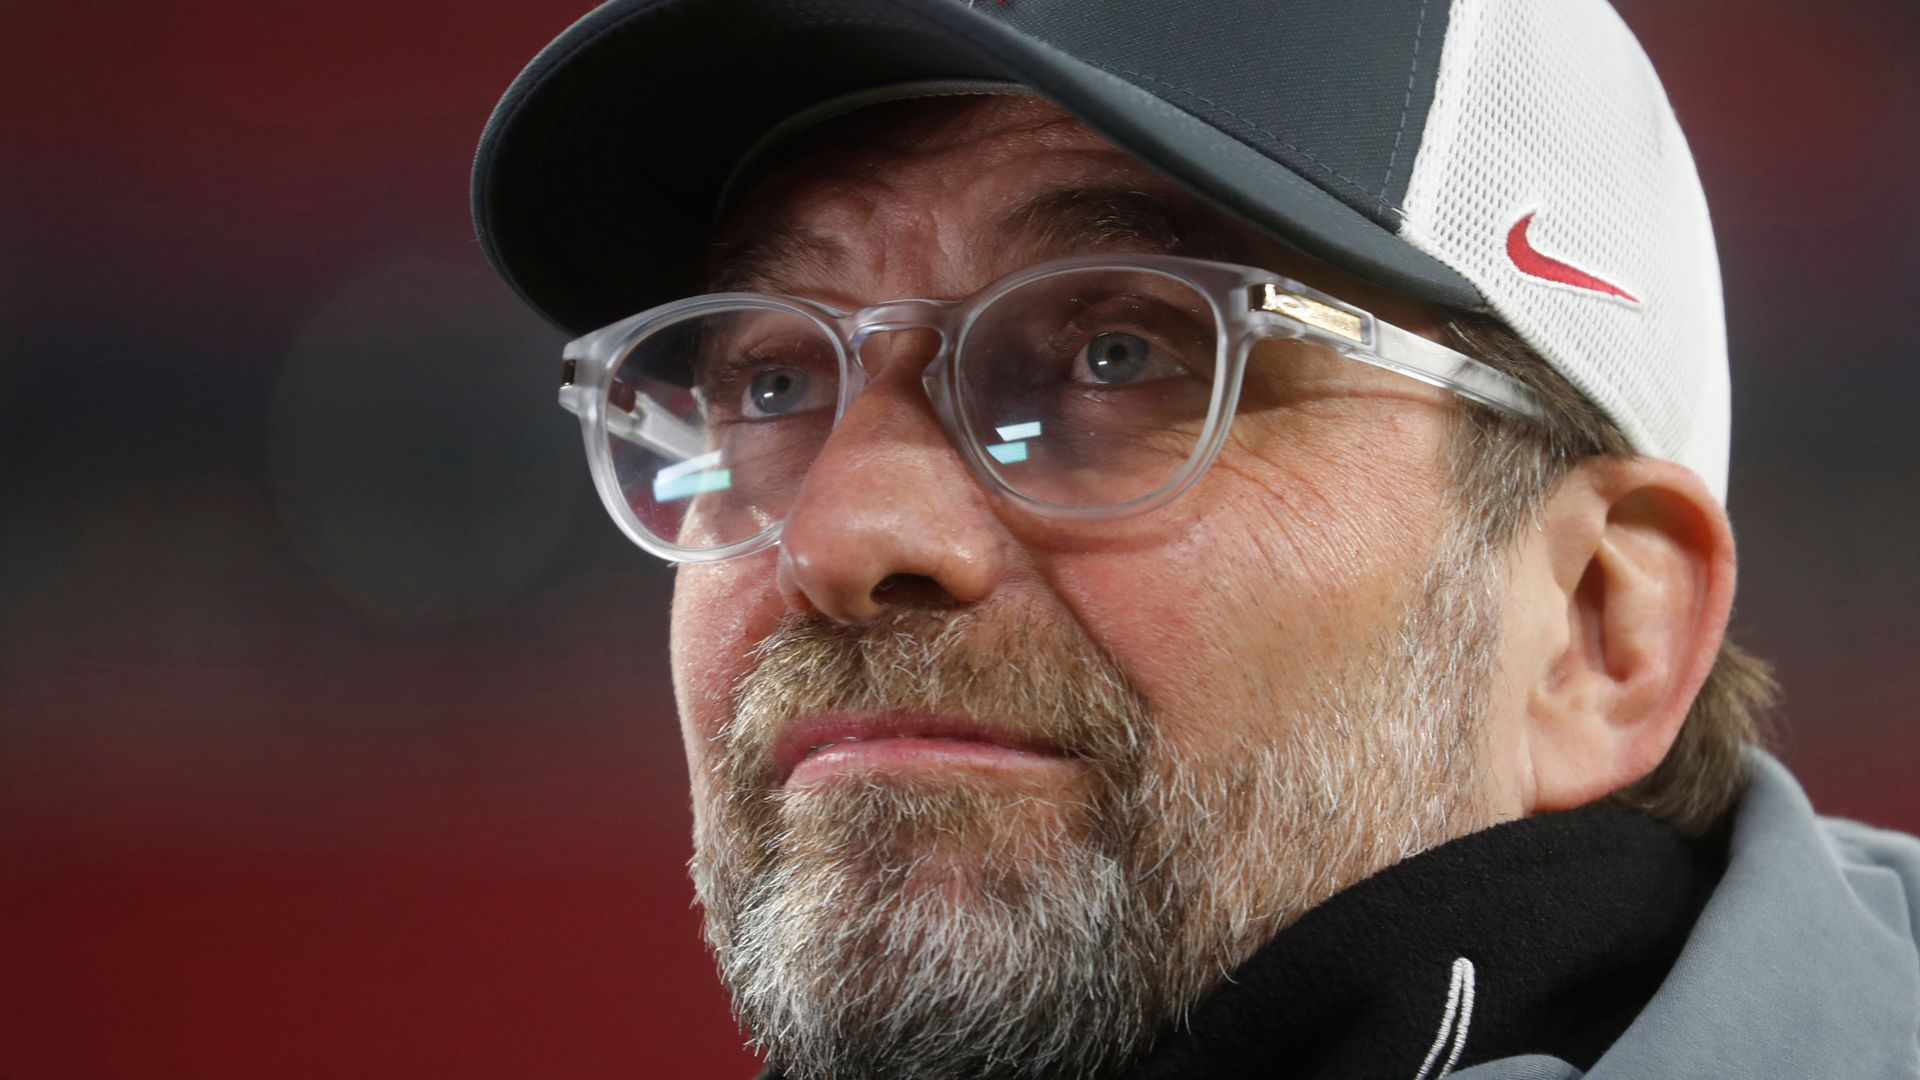 Jurgen Klopp: Liverpool boss unsurprised by Manchester United fans' protests but